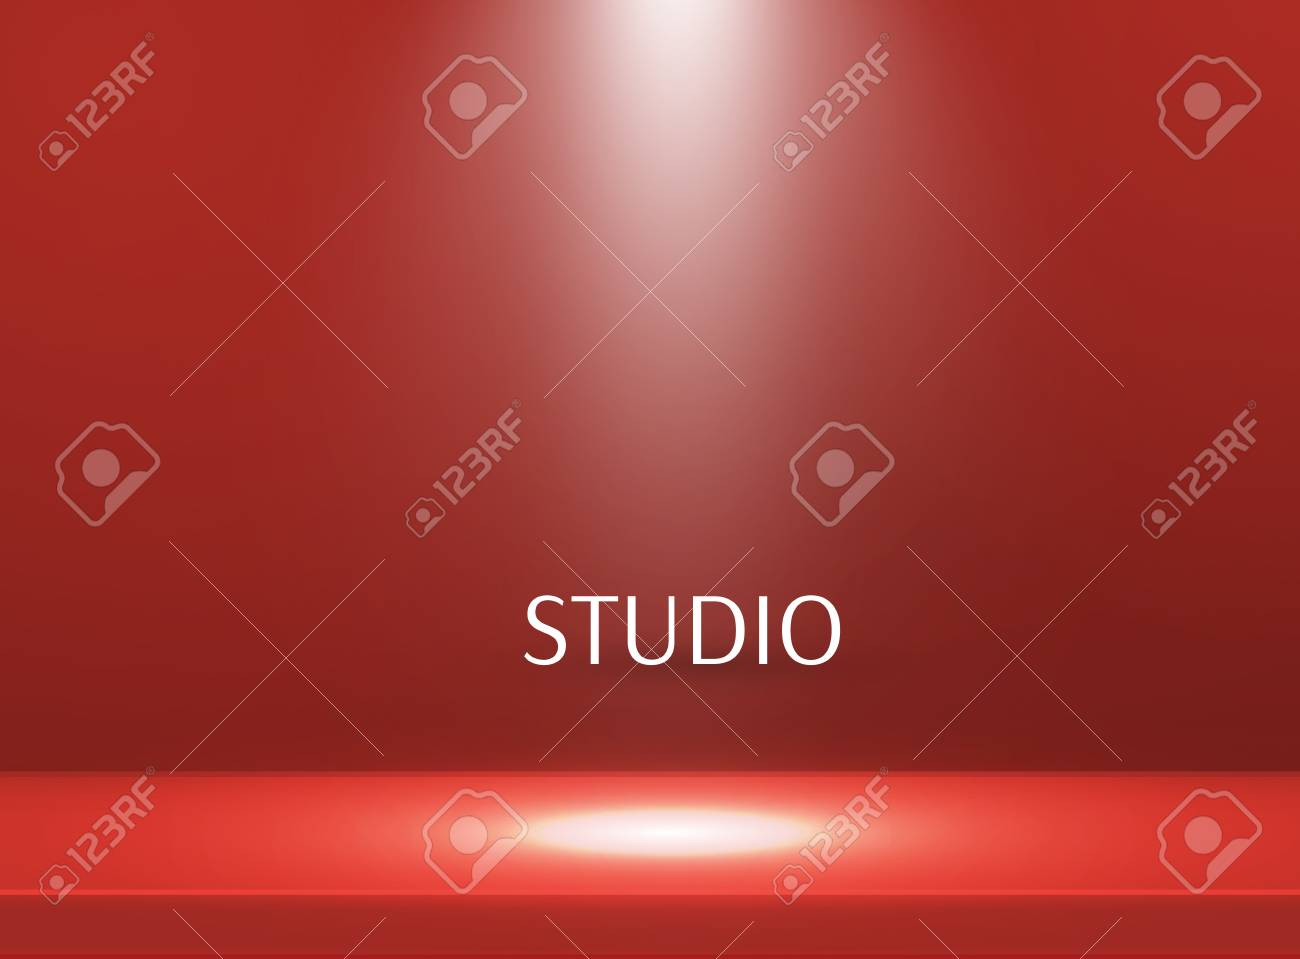 Empty bright color studio table, banner for advertising. Vector illustration - 120935247